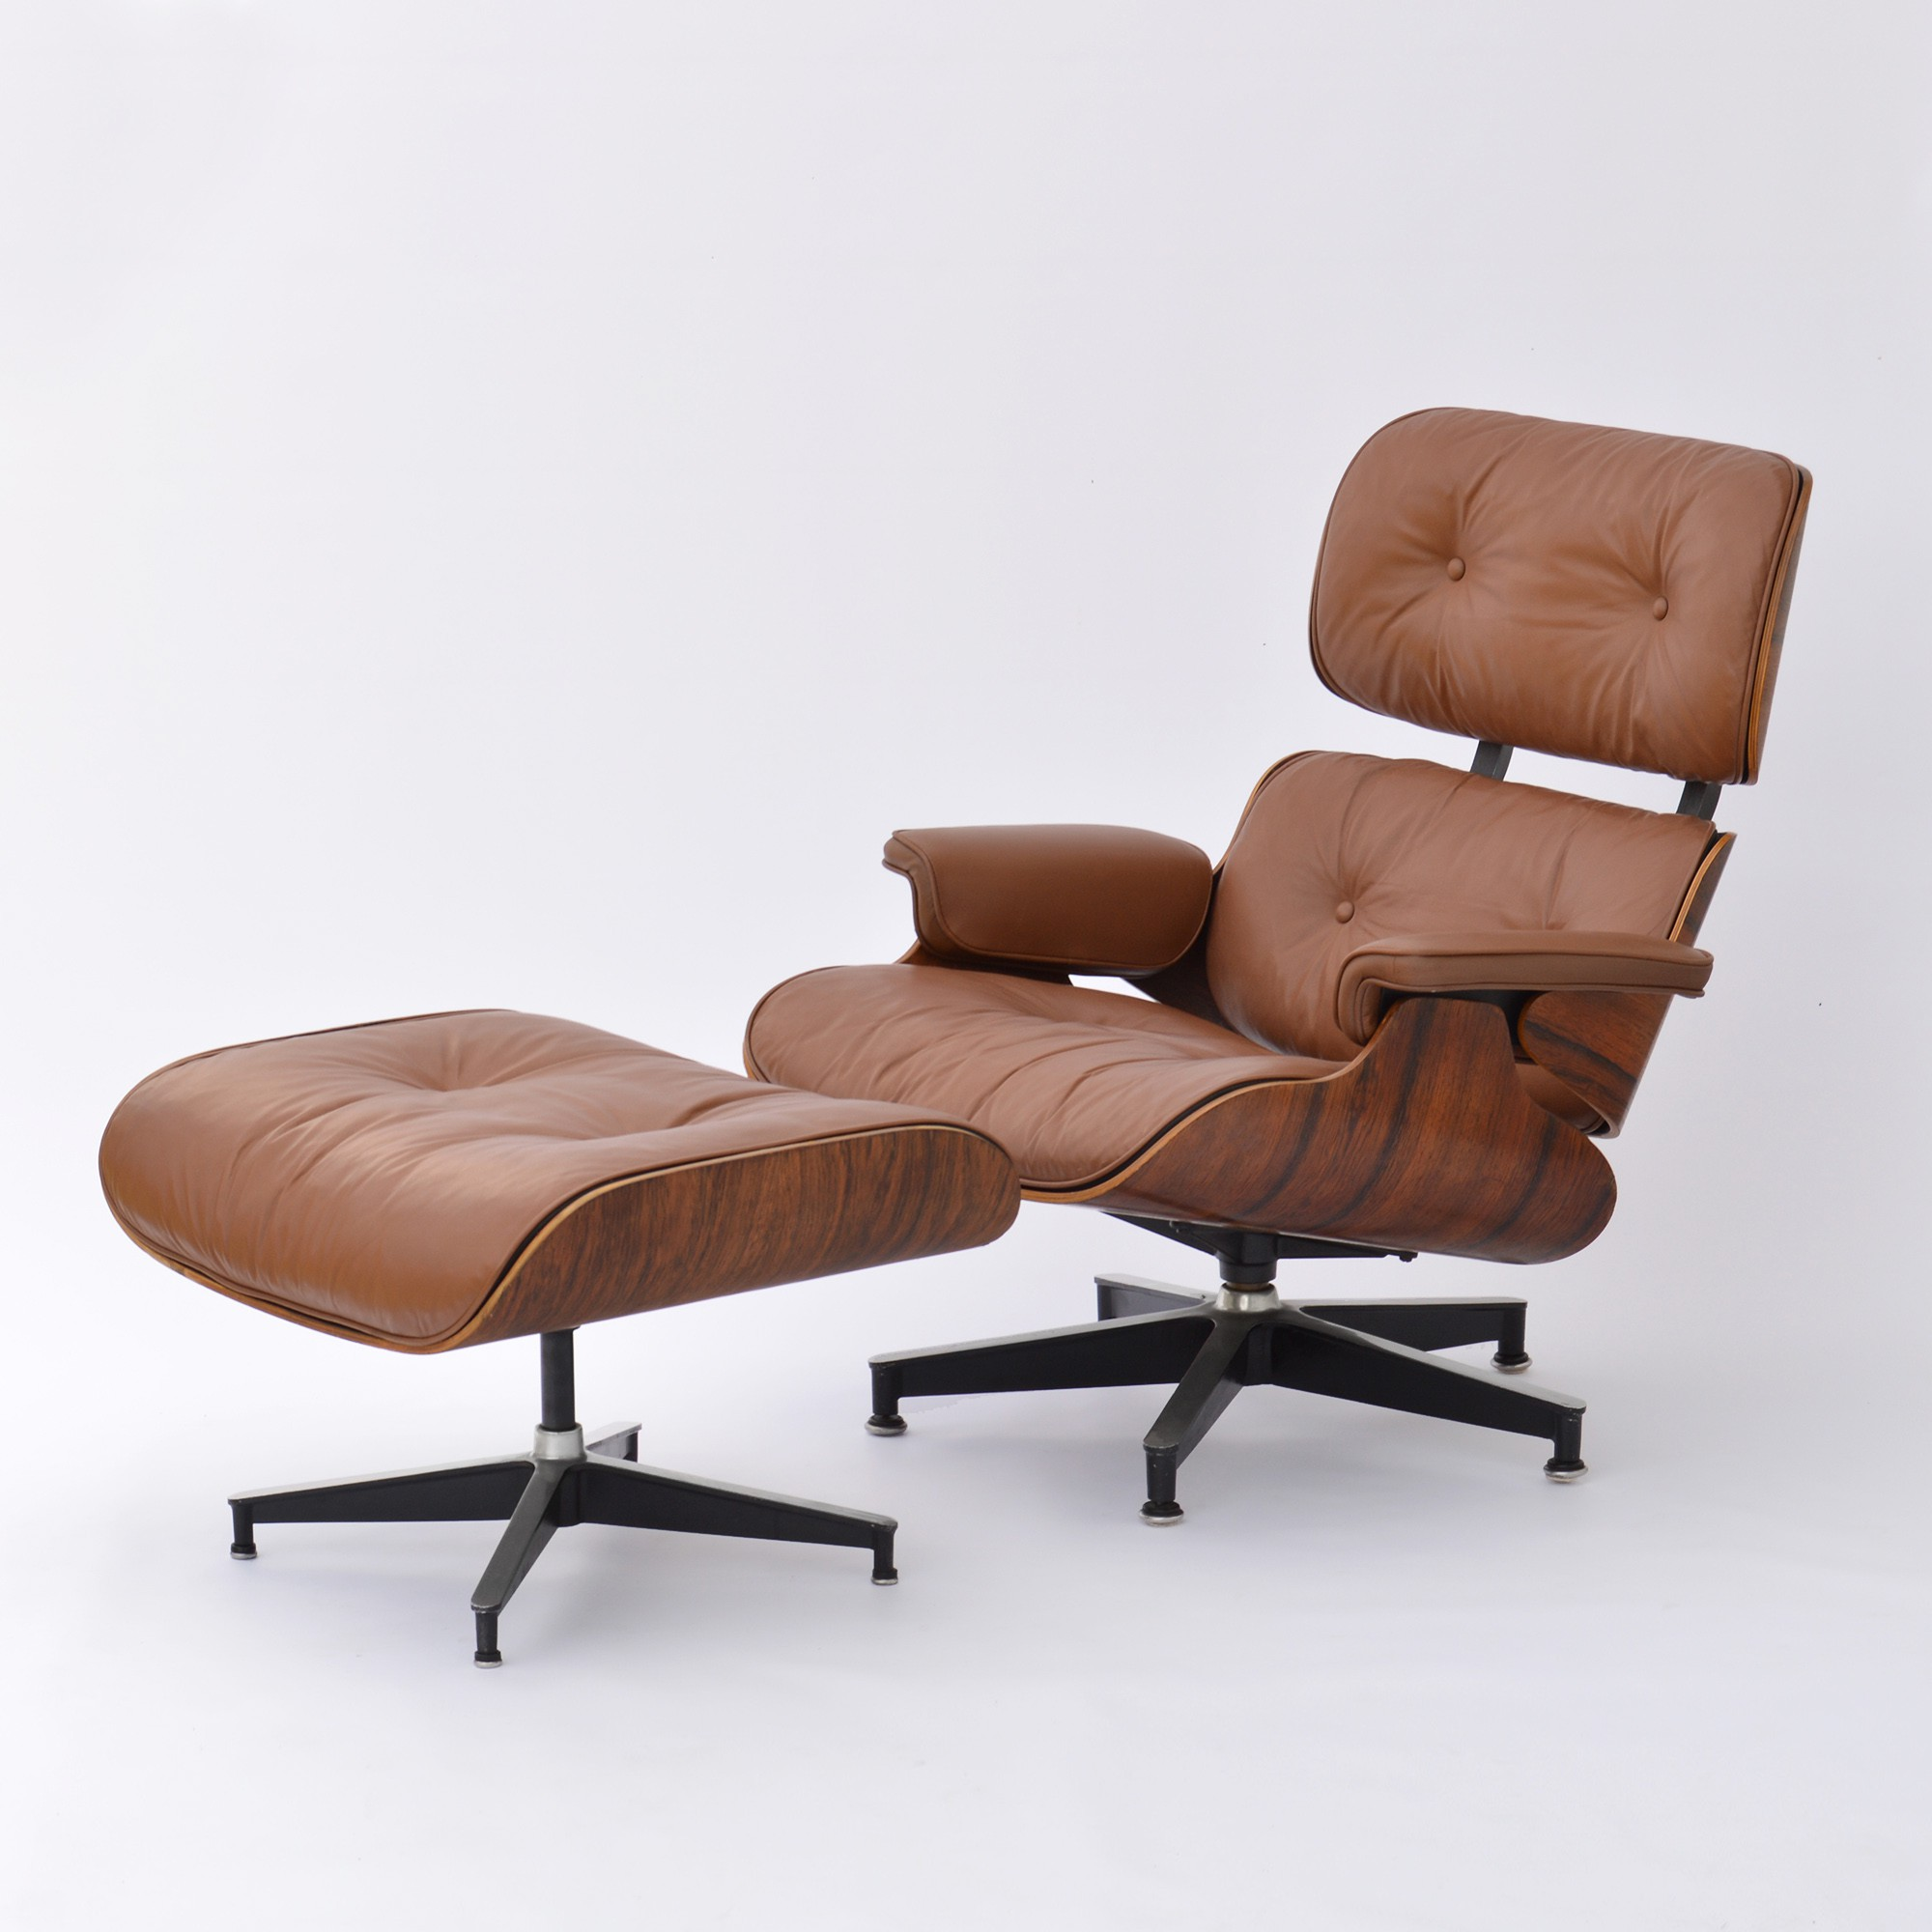 herman miller lounge chair and ottoman charles ray eames 1970 design market. Black Bedroom Furniture Sets. Home Design Ideas